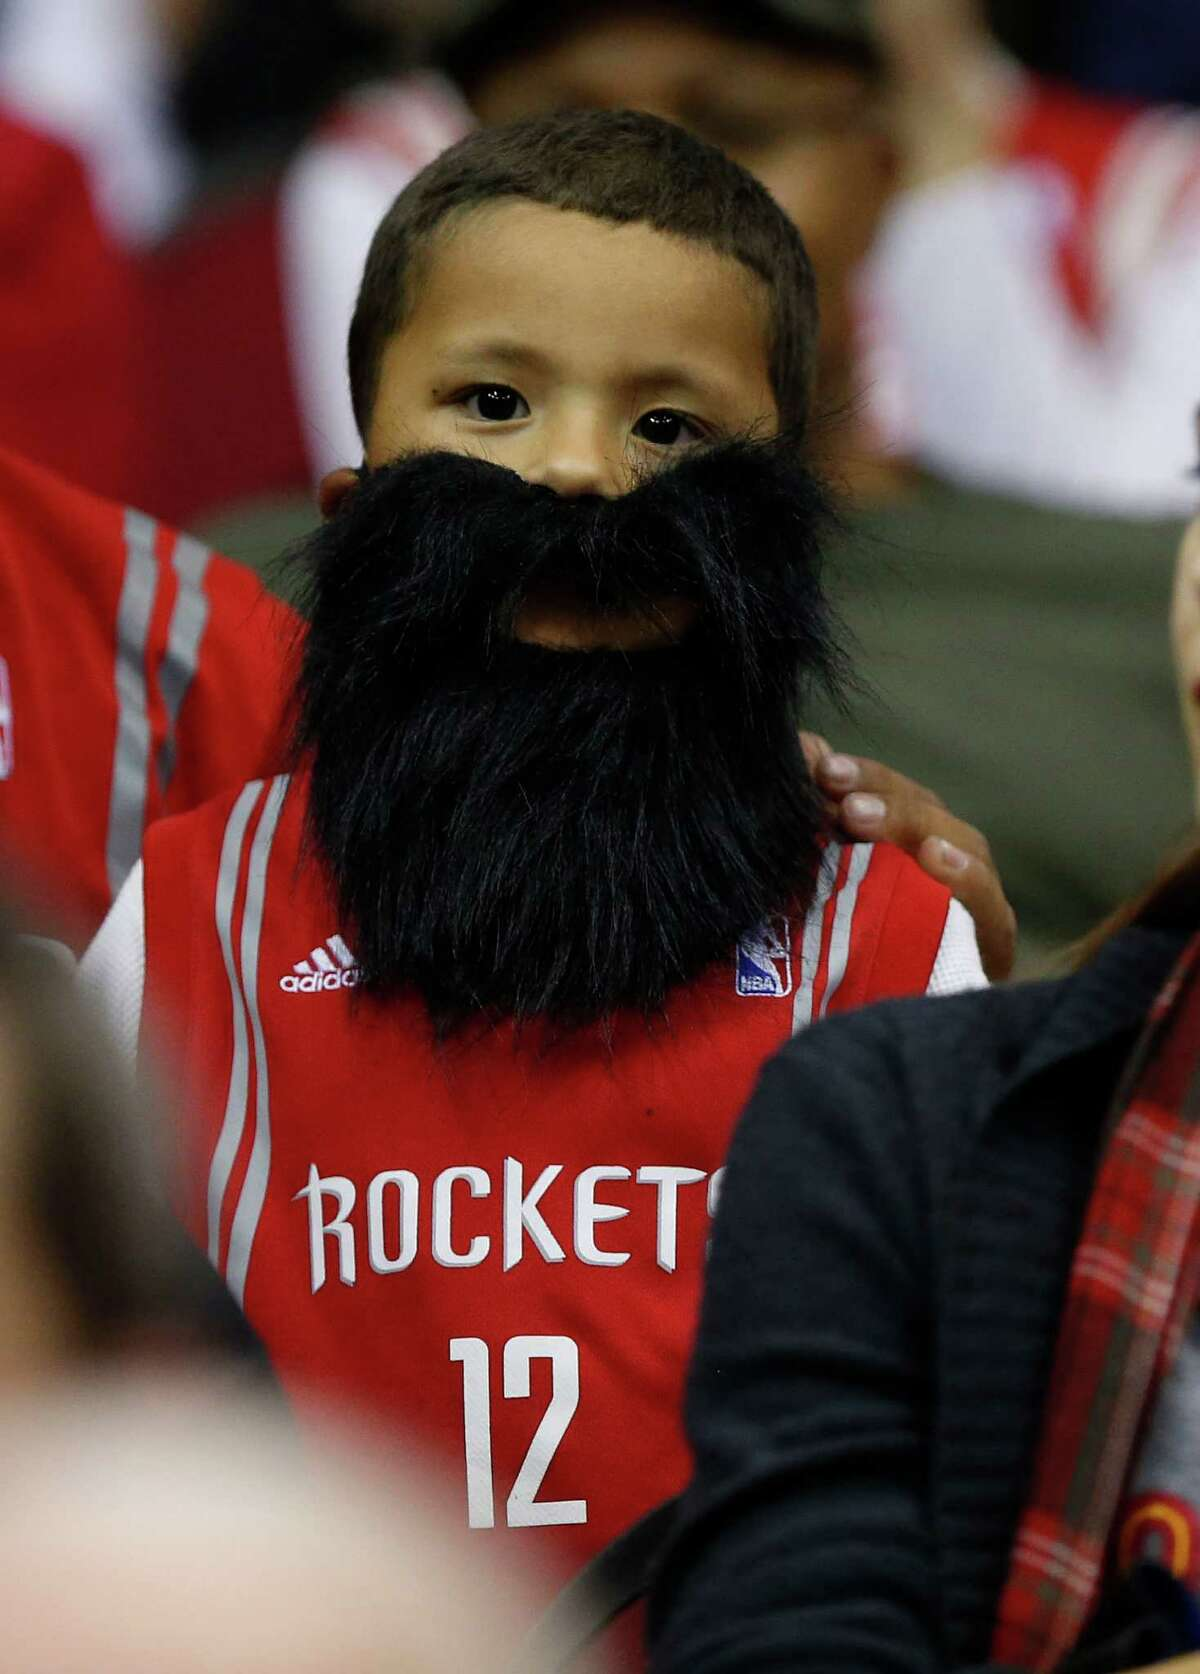 Diego Castaneda, 5, wears a beard in his seats before the start of an NBA basketball game at Toyota Center, Saturday, Nov. 1, 2014, in Houston. ( Karen Warren / Houston Chronicle )